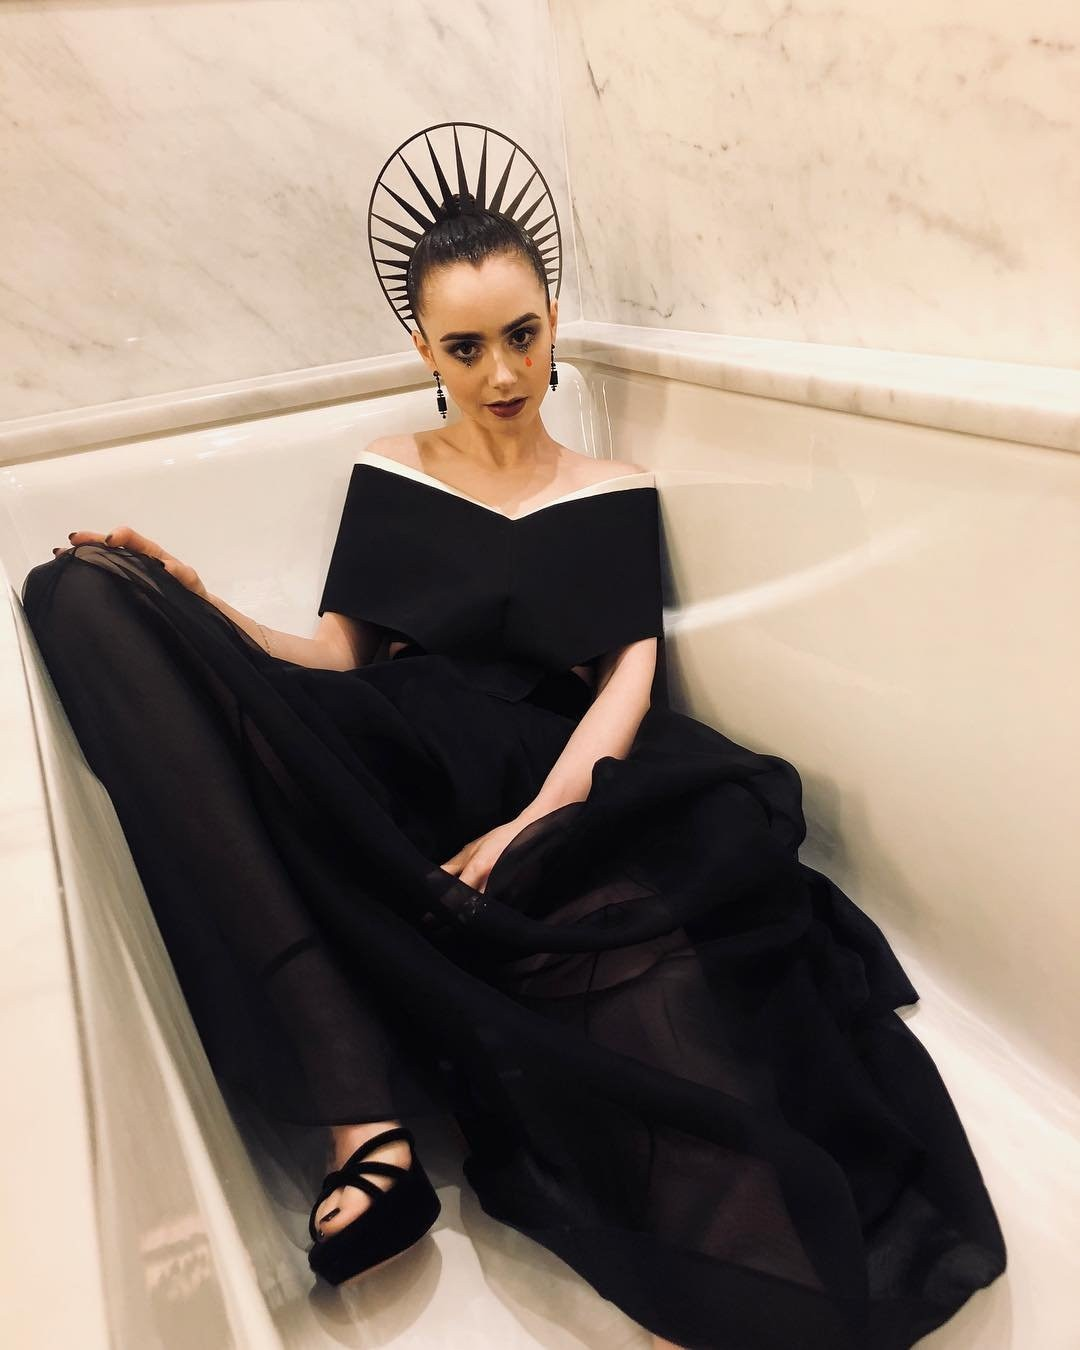 """Taking a Break -  The actress captioned this photo, """"Tell me the truth: should I stay in and take a bath or go out to the after party?"""""""